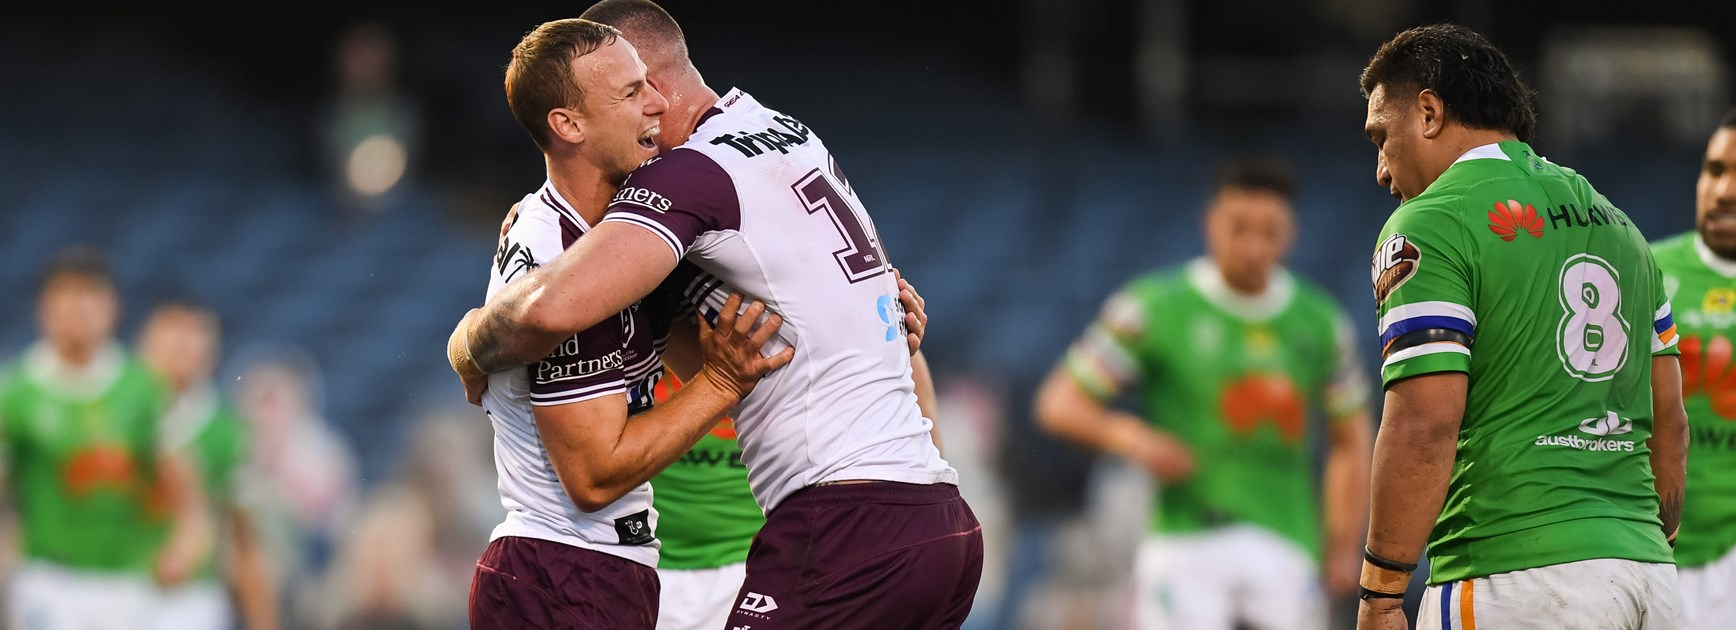 Flipping the script: How Manly cope with loss of stars